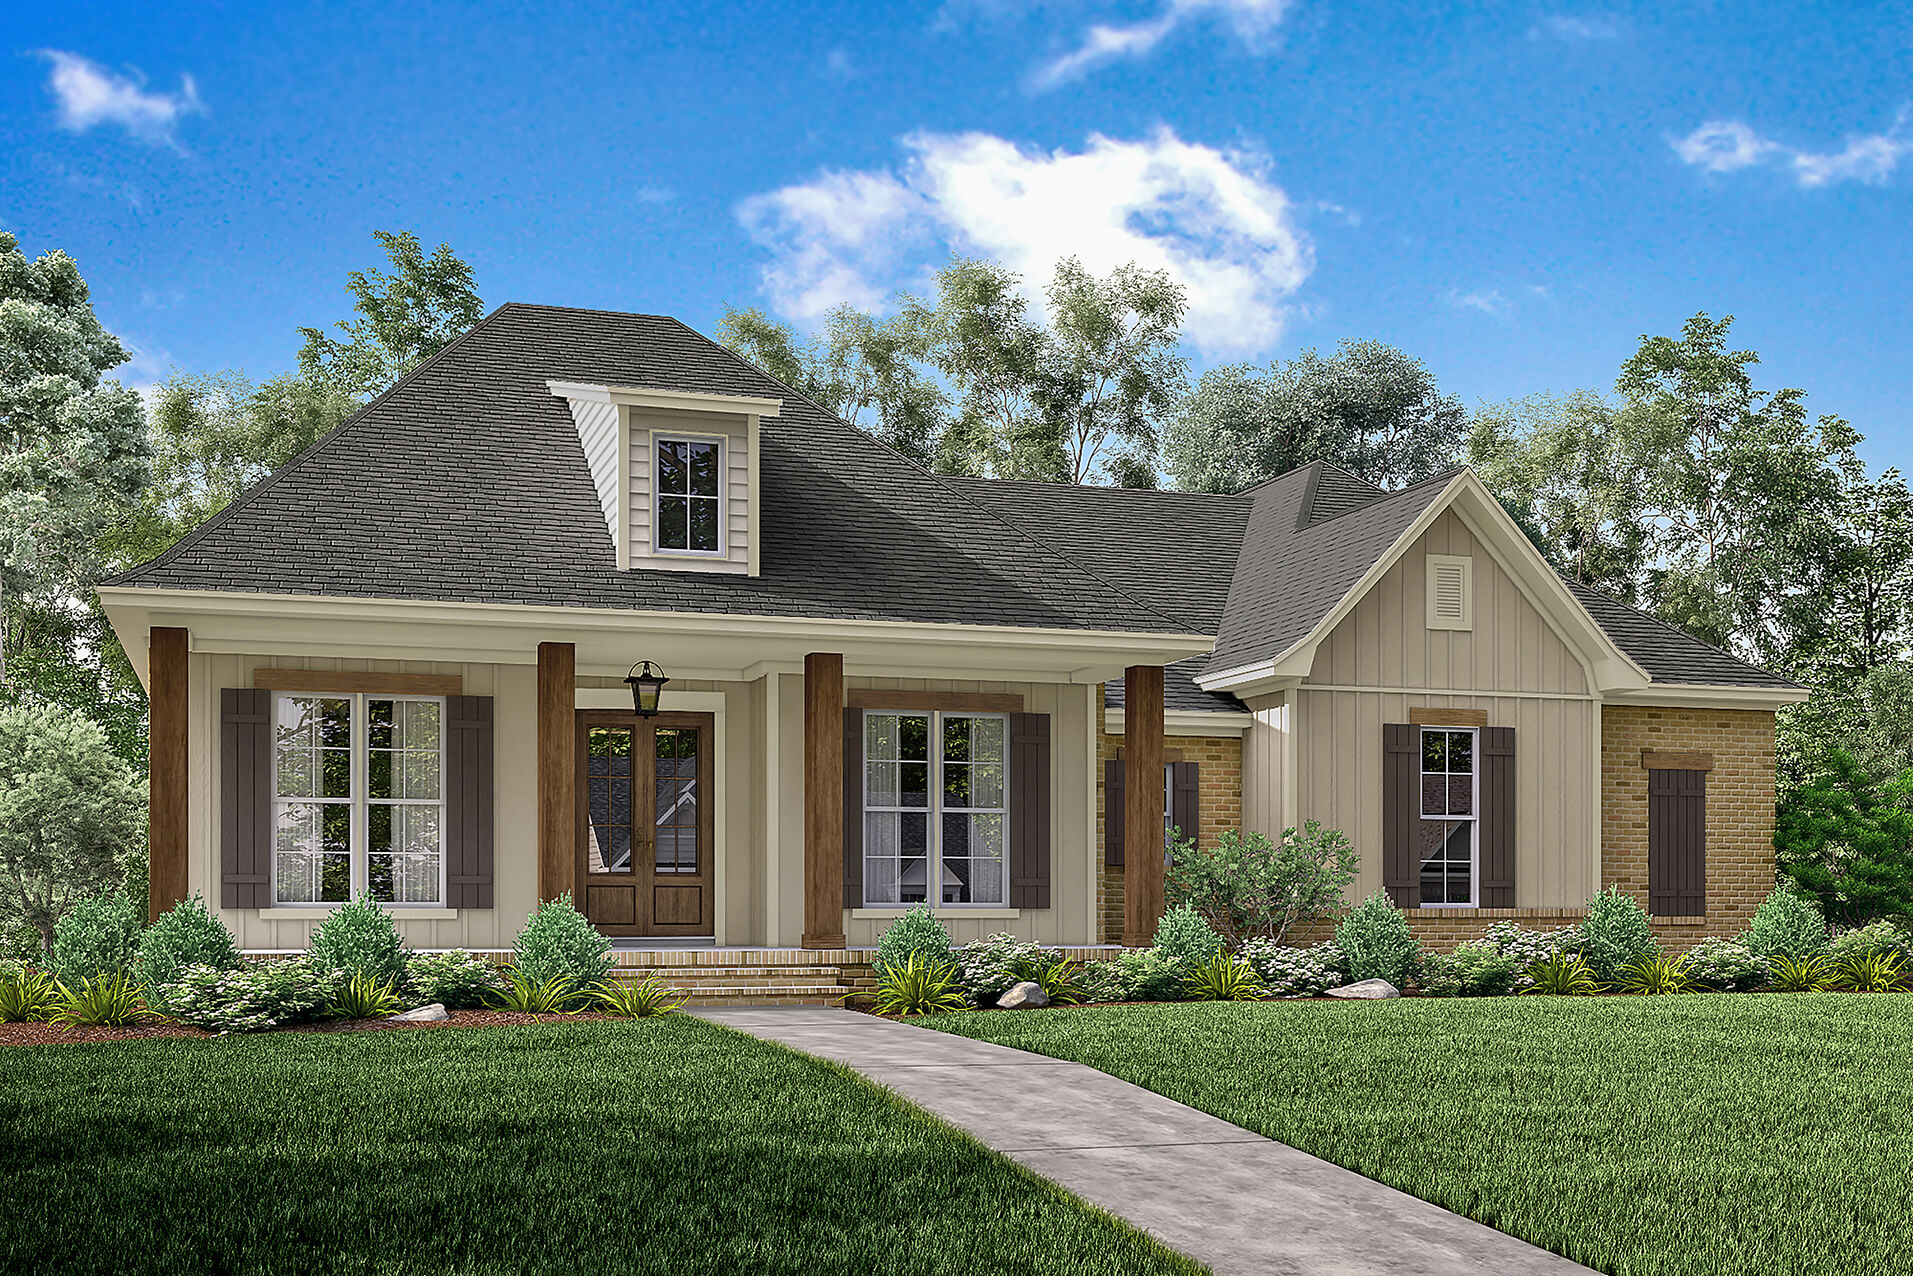 3 bedrm 1900 sq ft acadian house plan 142 1163 for 1800 sf home plans